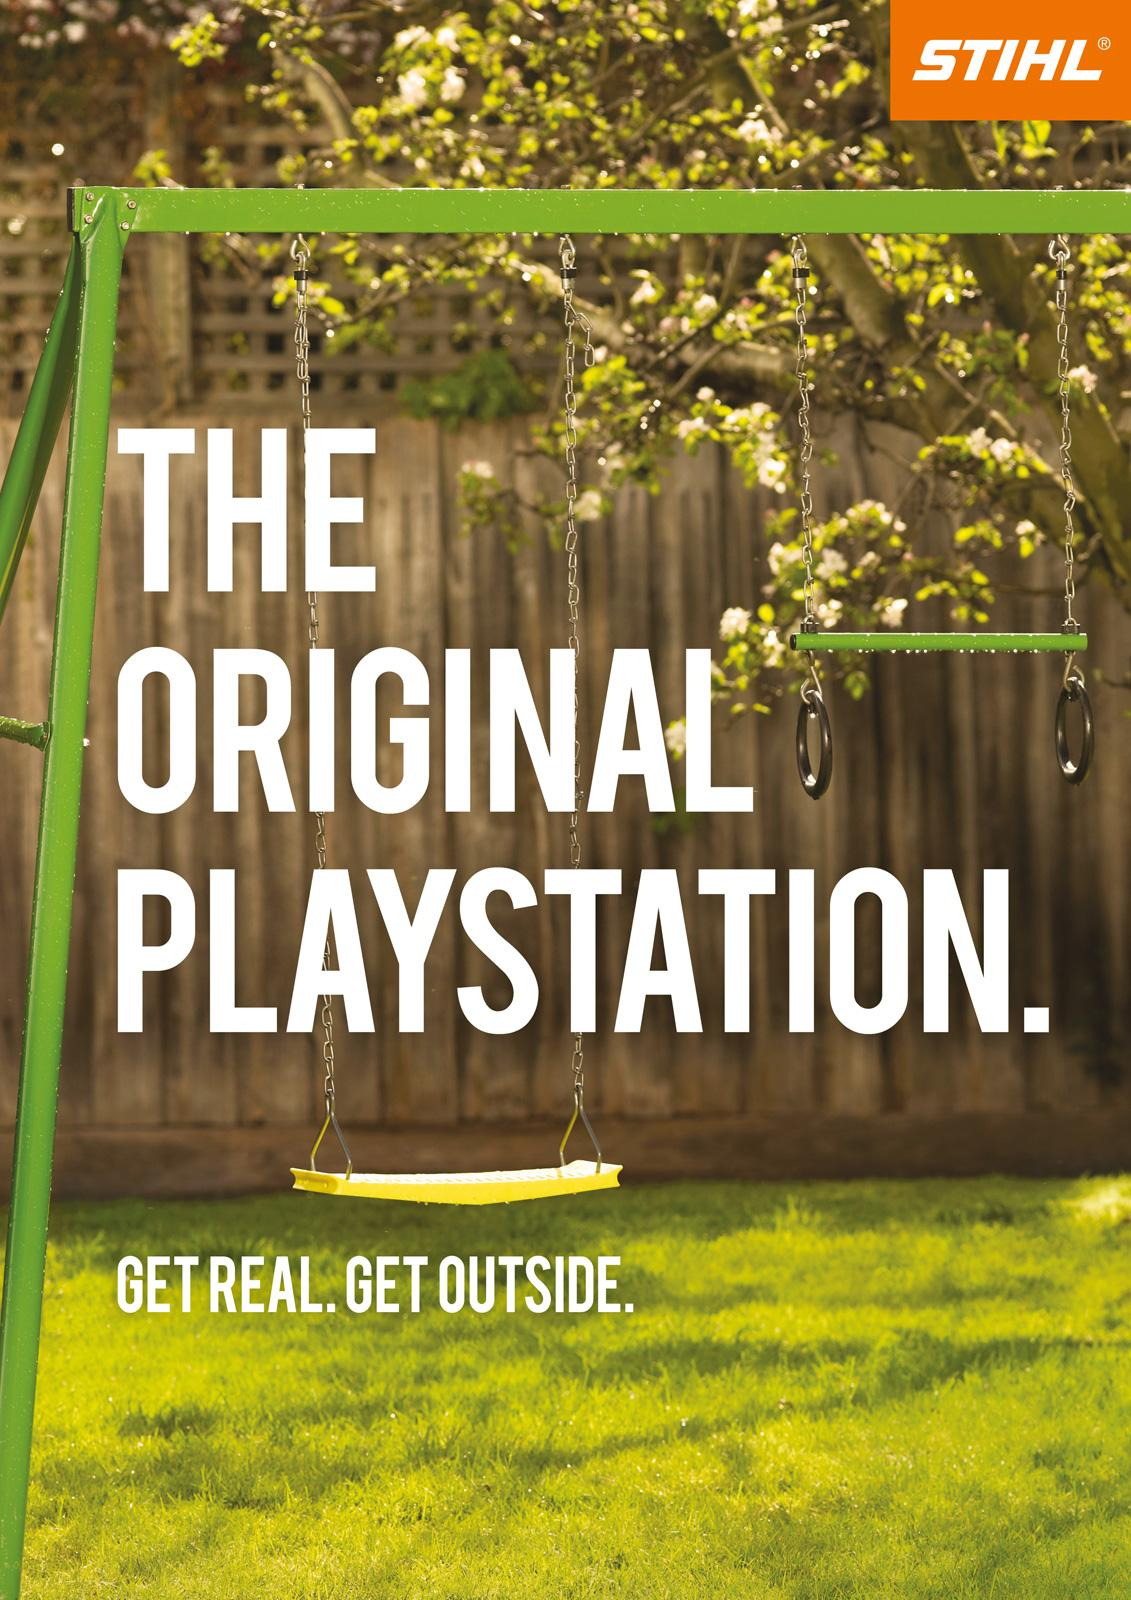 Stihl Print Ad -  The Original Playstation